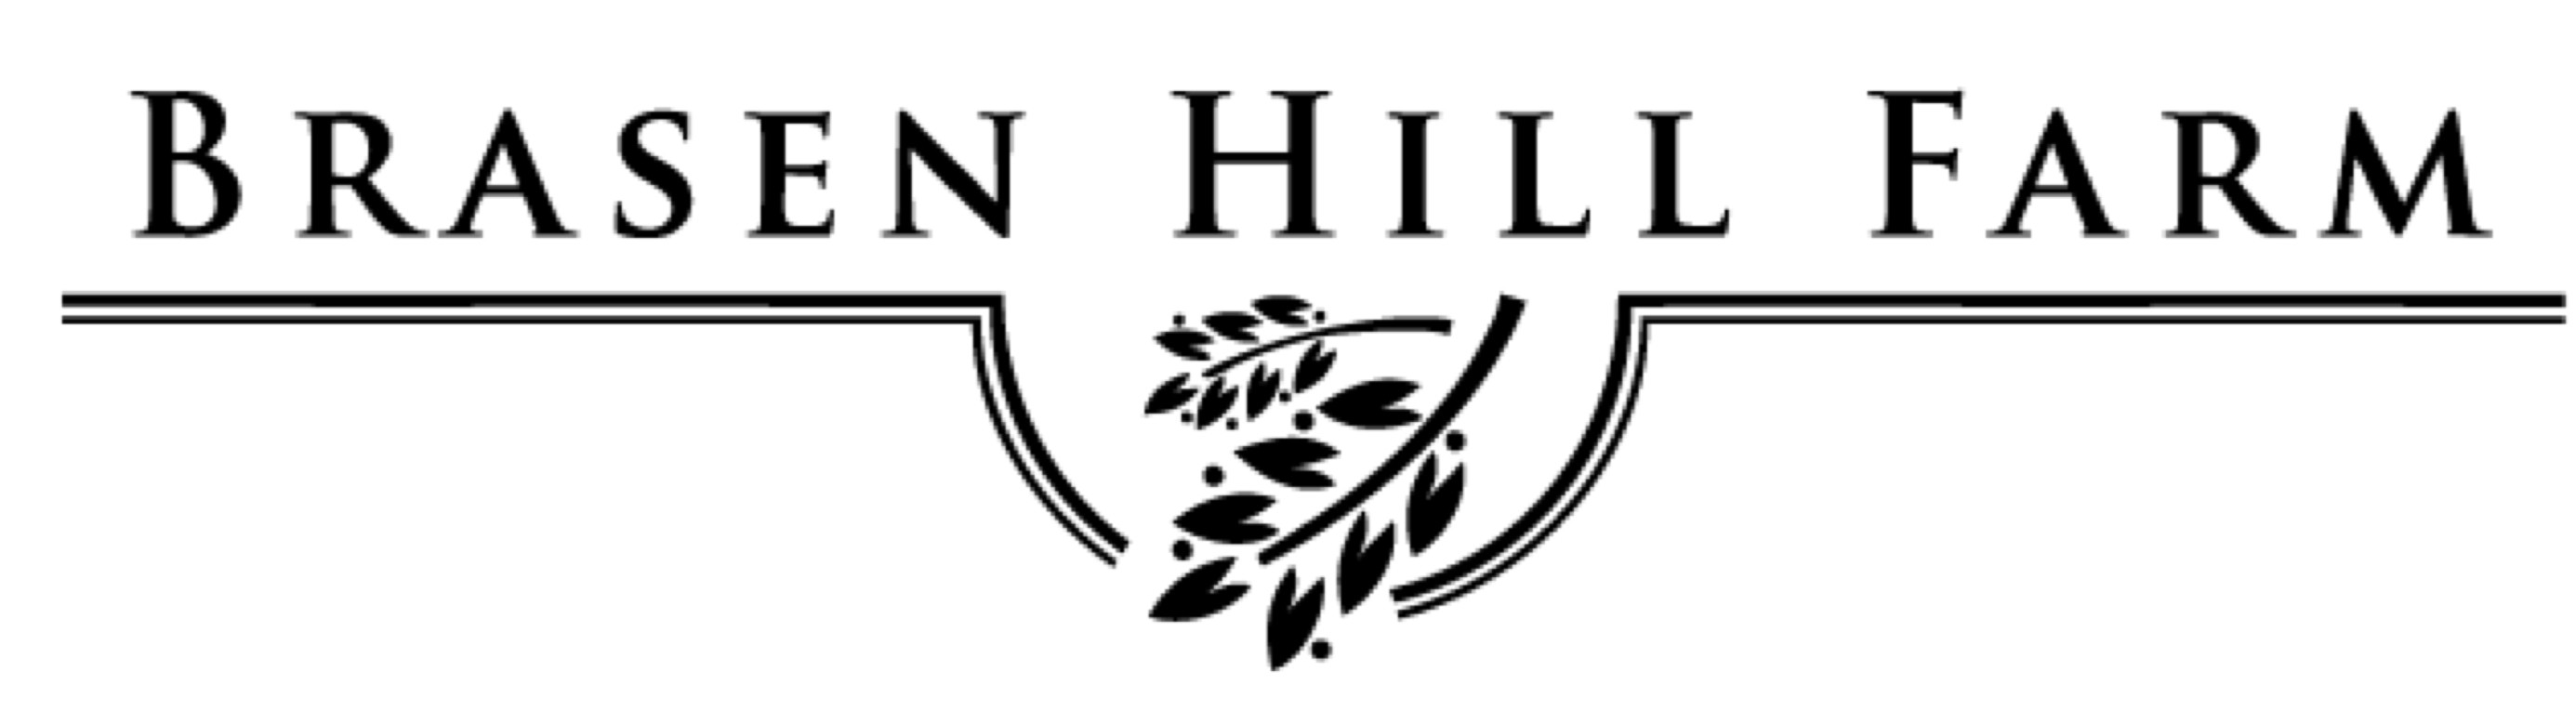 Brasen Hill Farm Logo